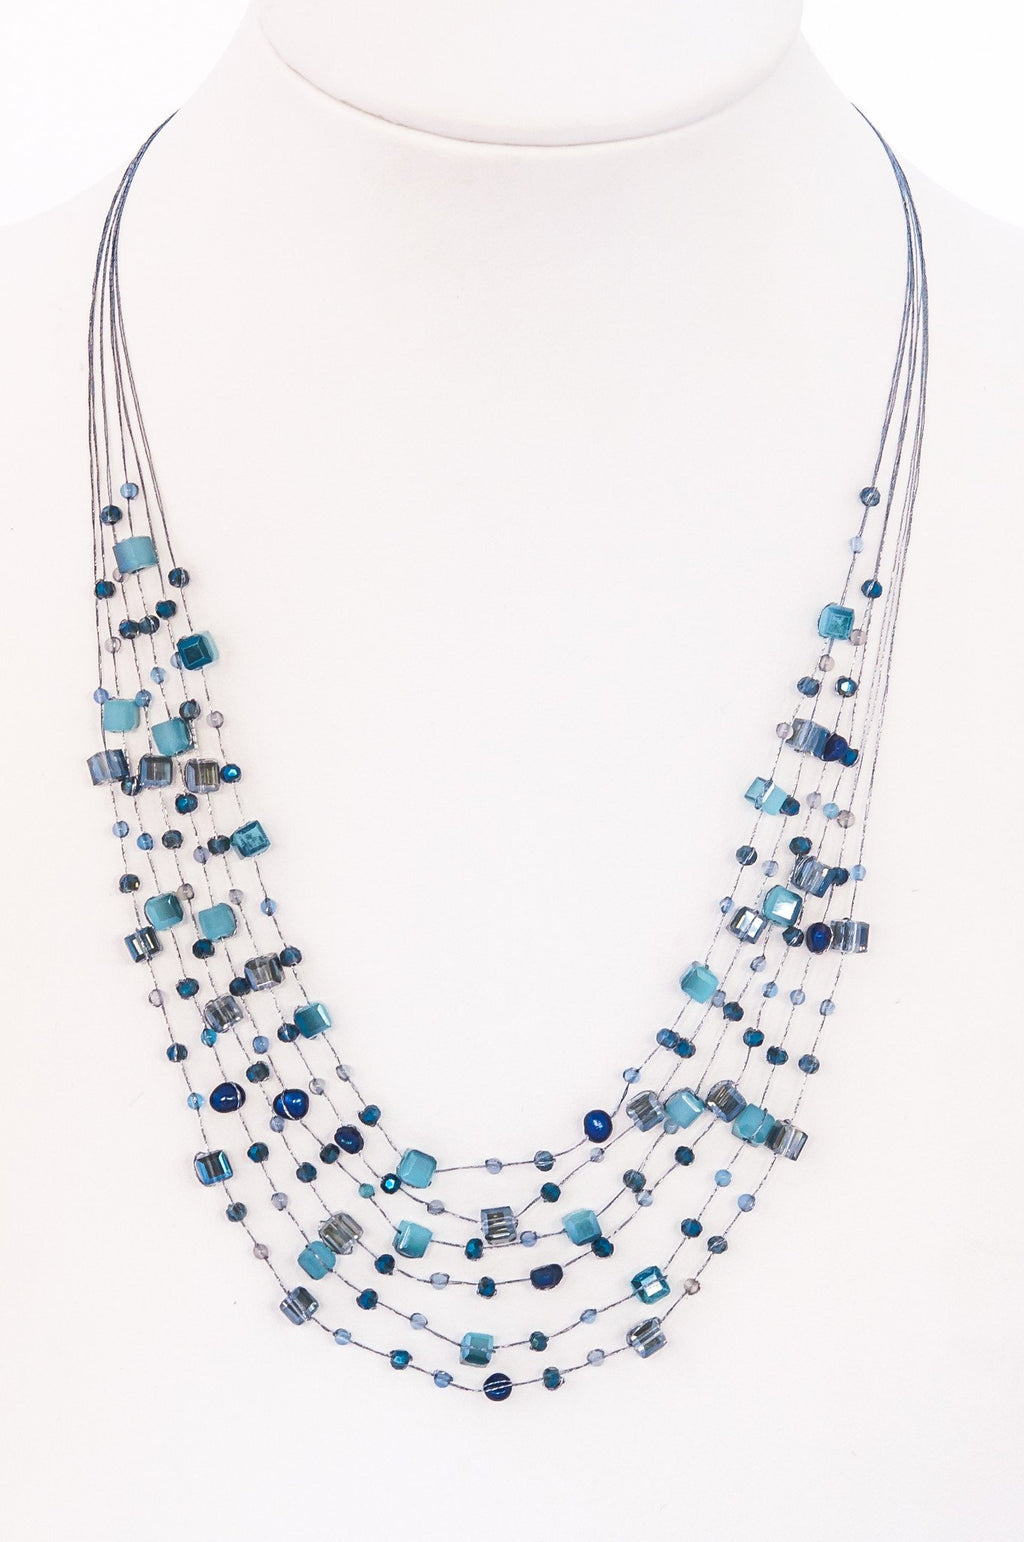 This is a layered bib necklace made with silk thread and hand-tied crystals both round and square. It's sexy, simple and sophisticated.